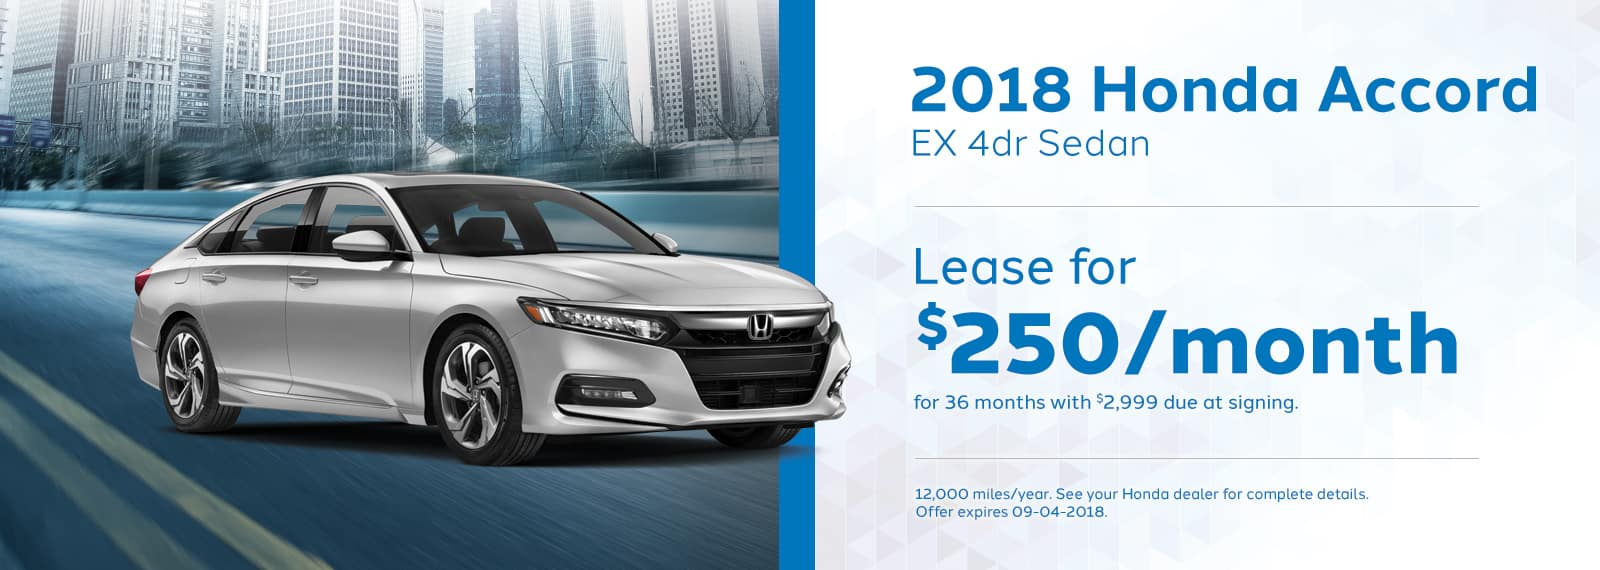 Accord Genthe Honda Lease special